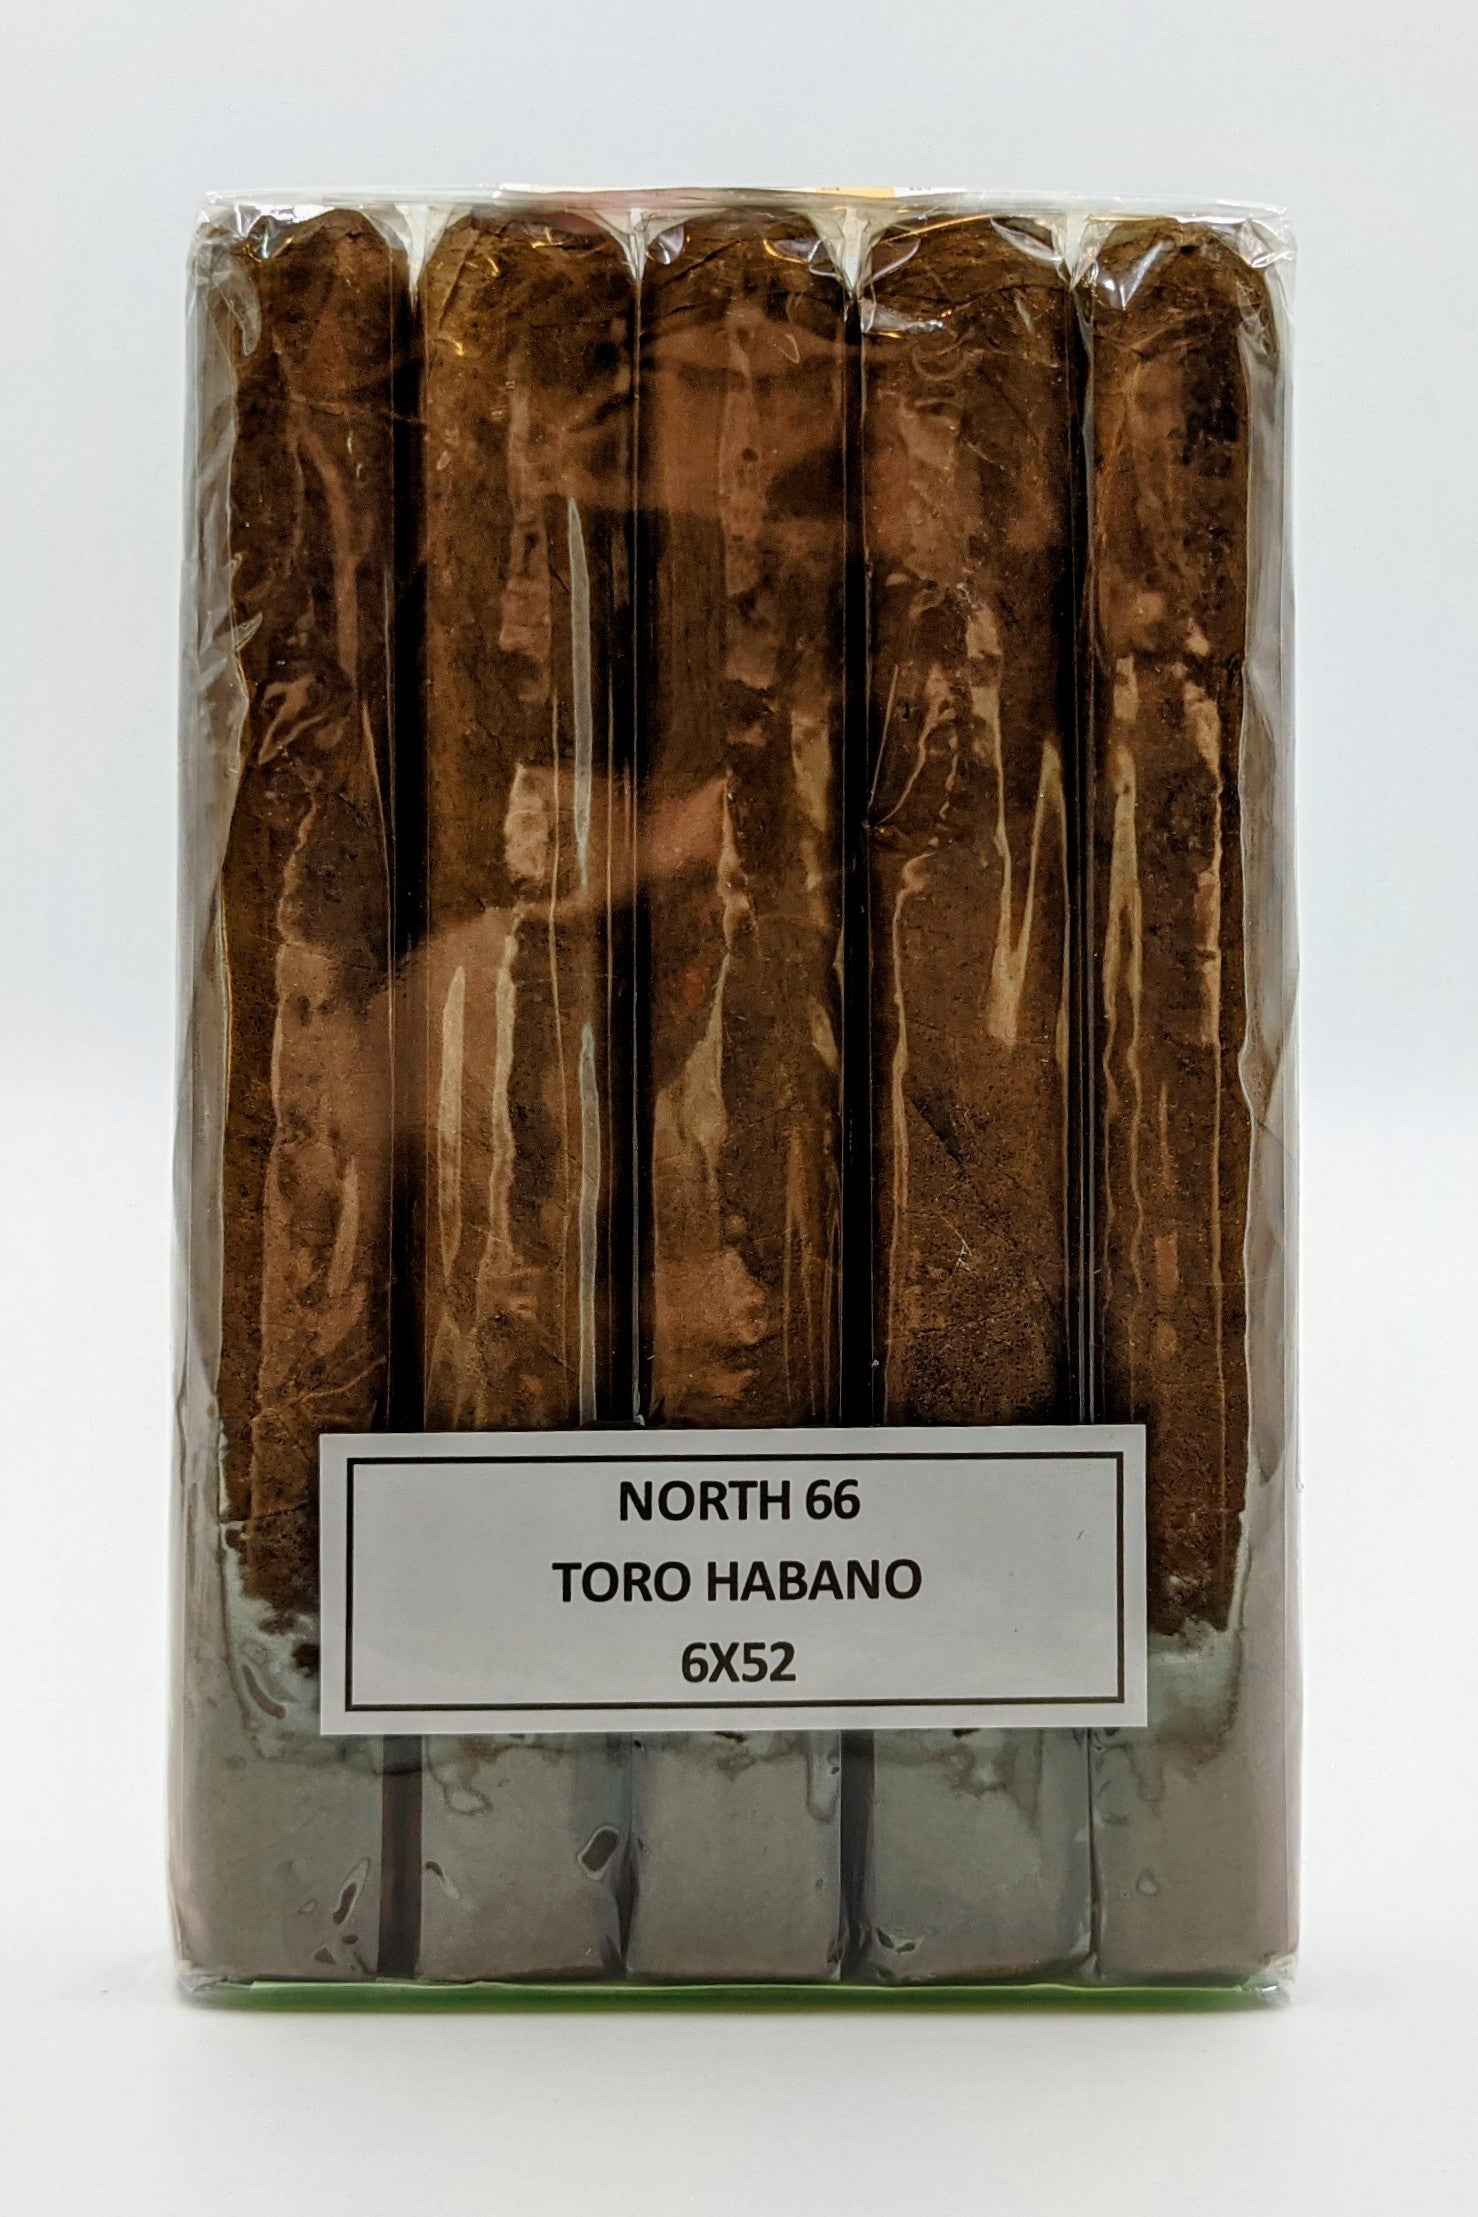 5 PACK of North 66 Toro Habano... SAVE 10%